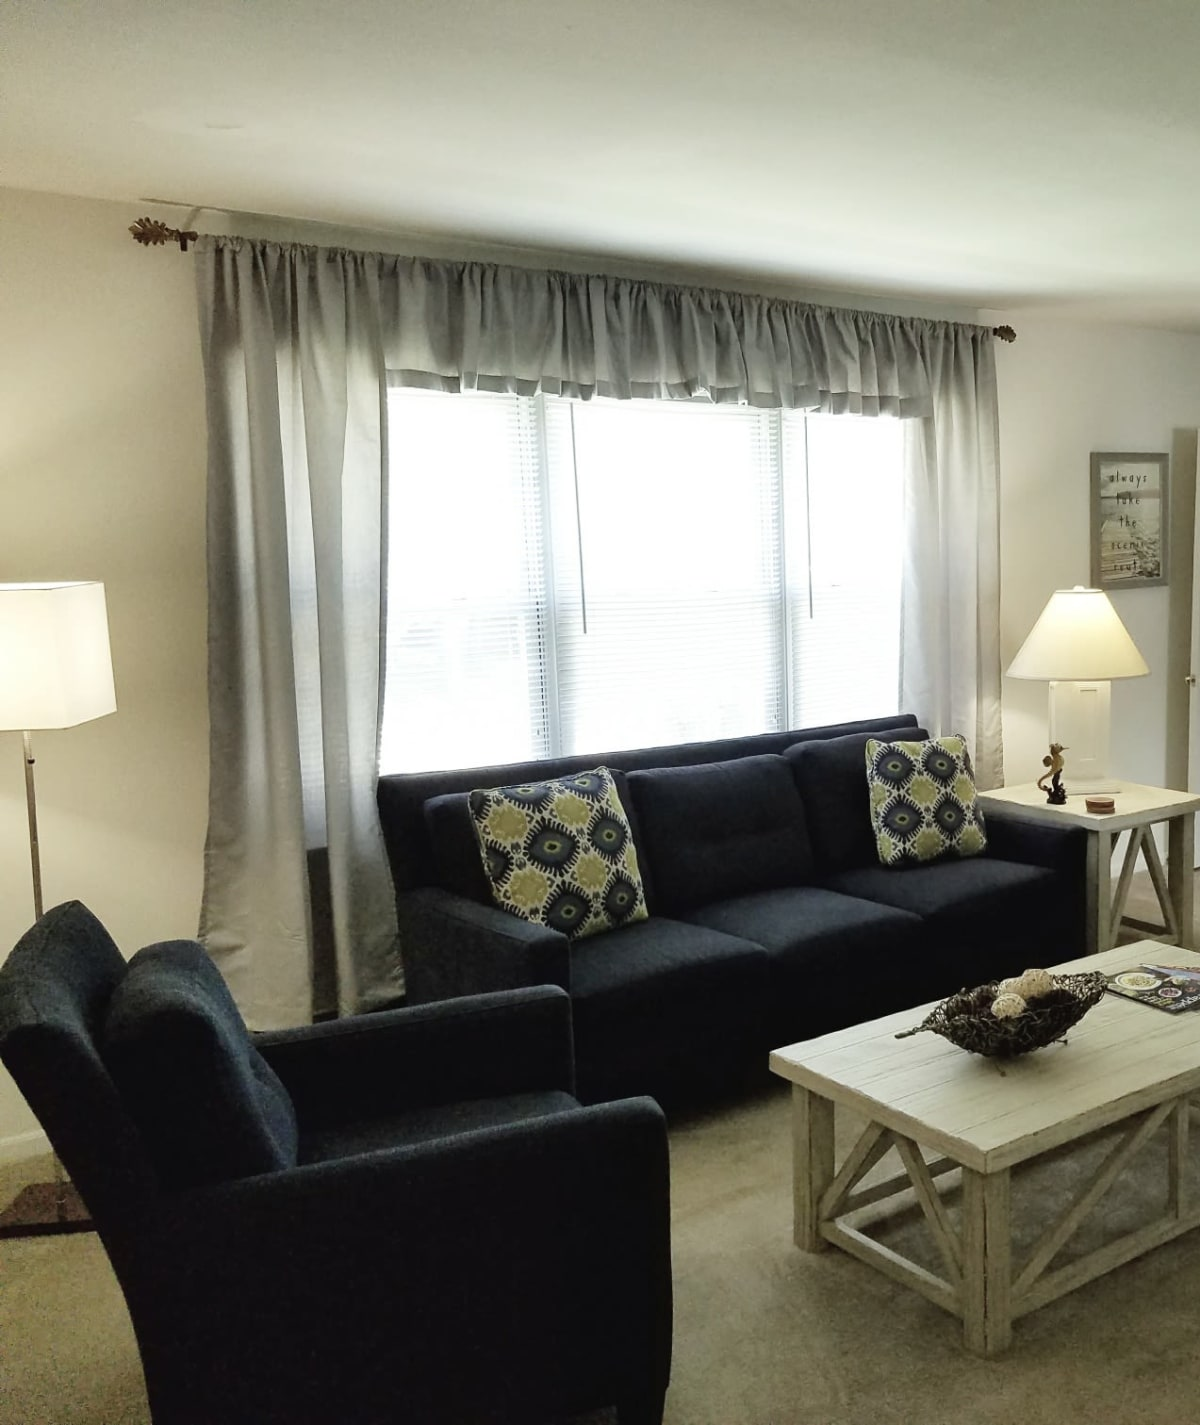 Apartments in Eatontown, NJ